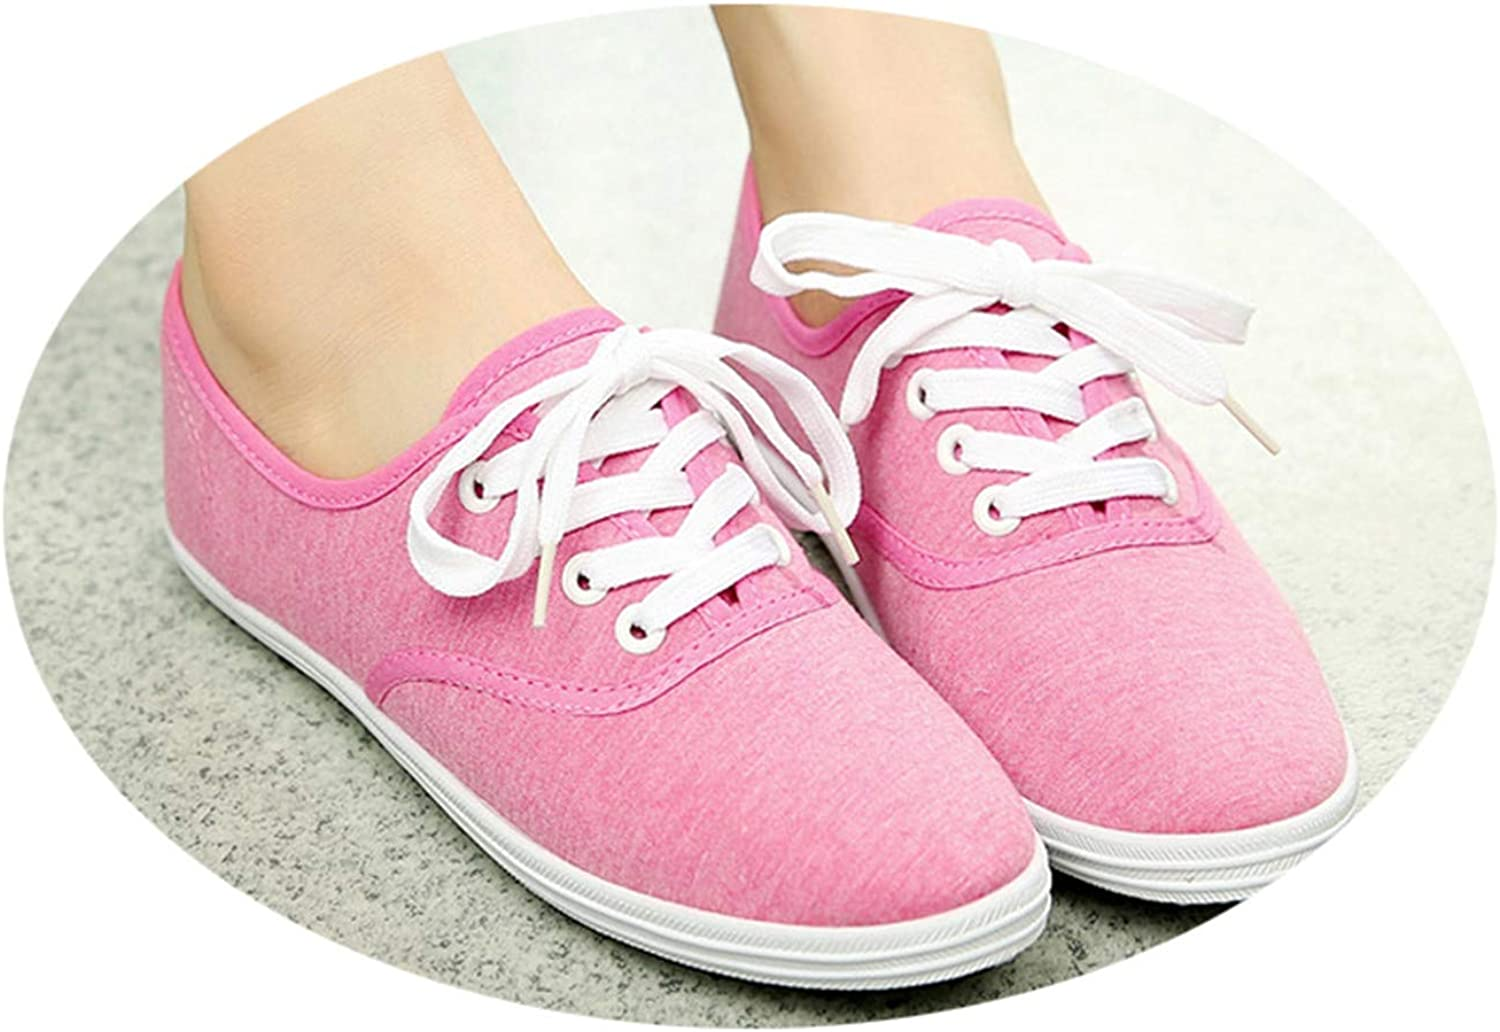 Reputation1 Flat Womens Spring Canvas Shoes Female Korean White Shoes Breathable Literature Student Shoes Female Foreign